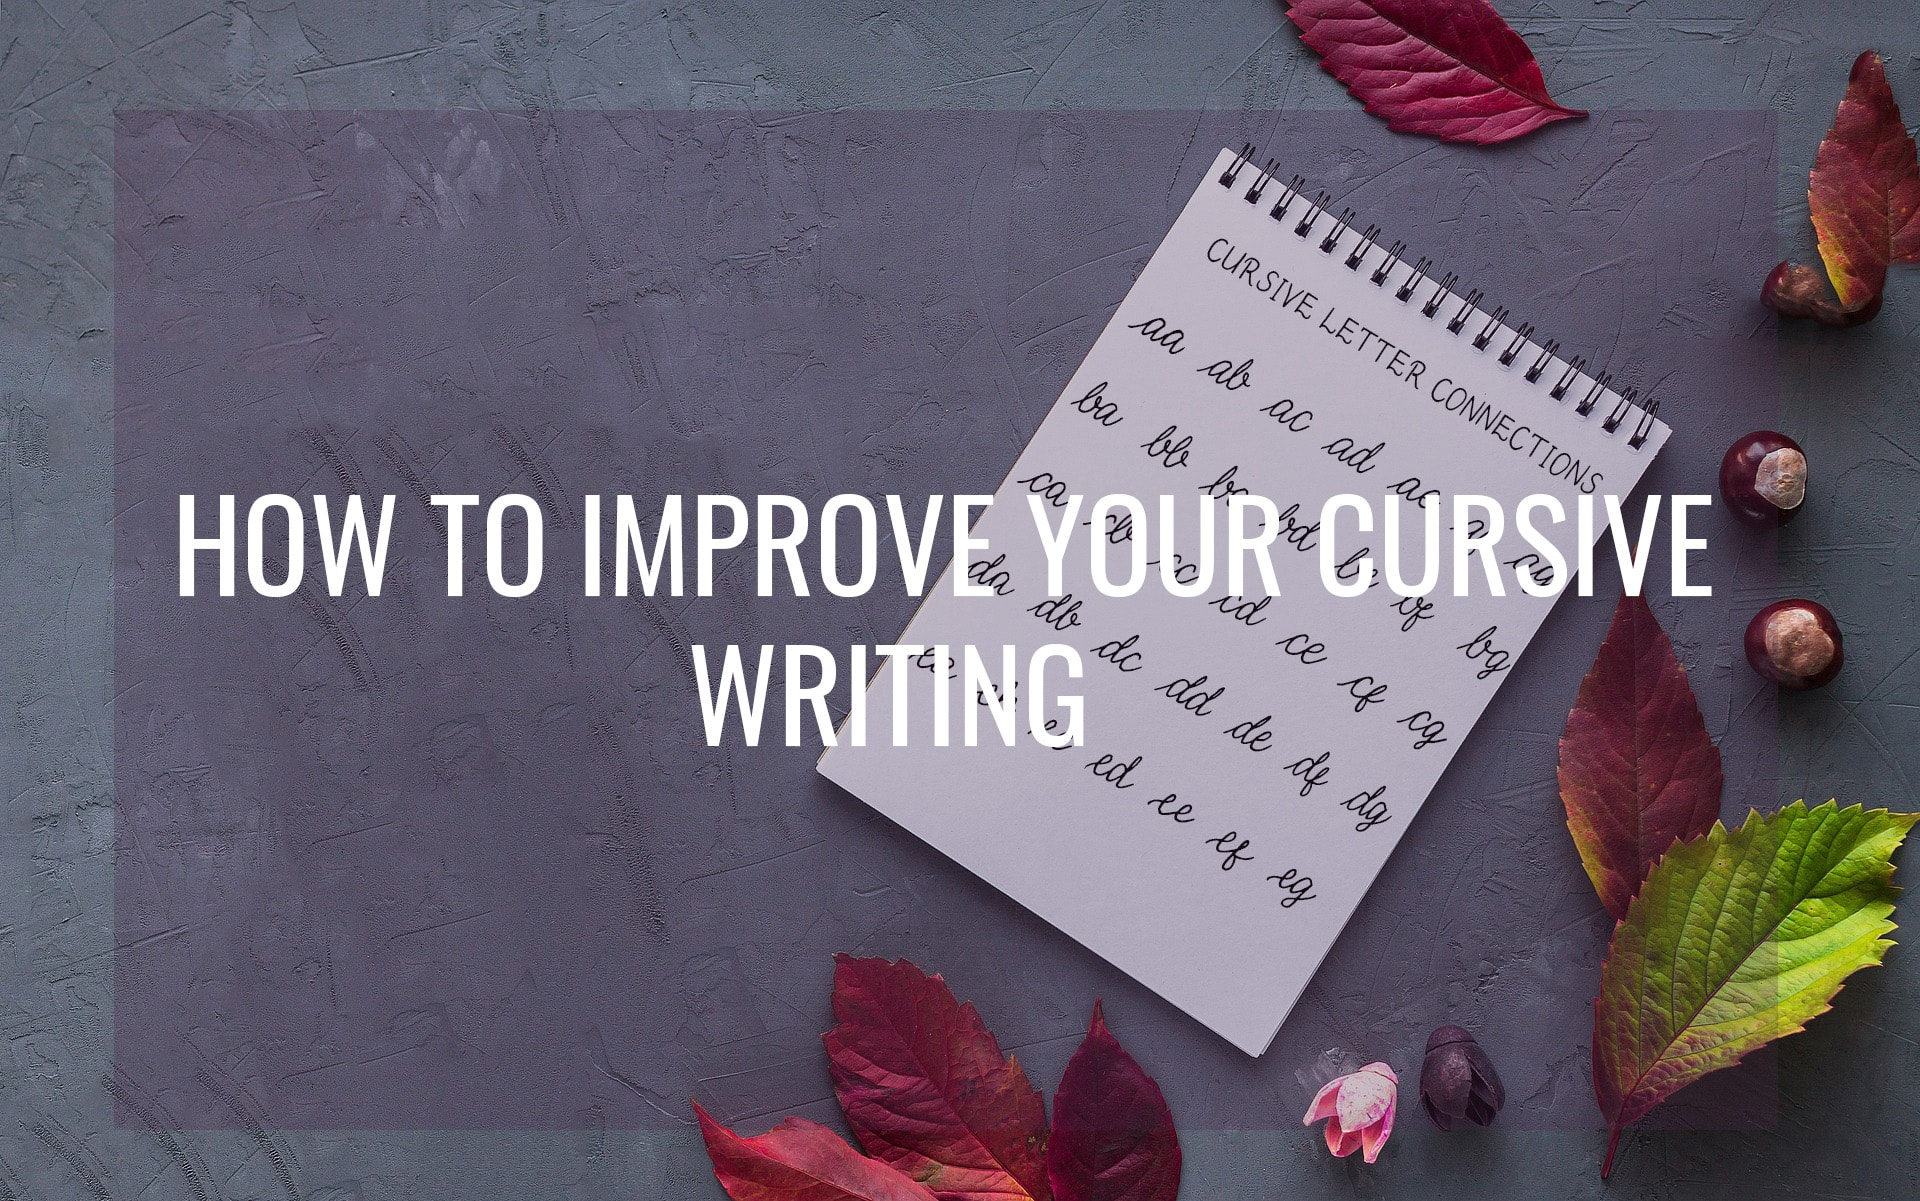 How To Improve Your Cursive Writing